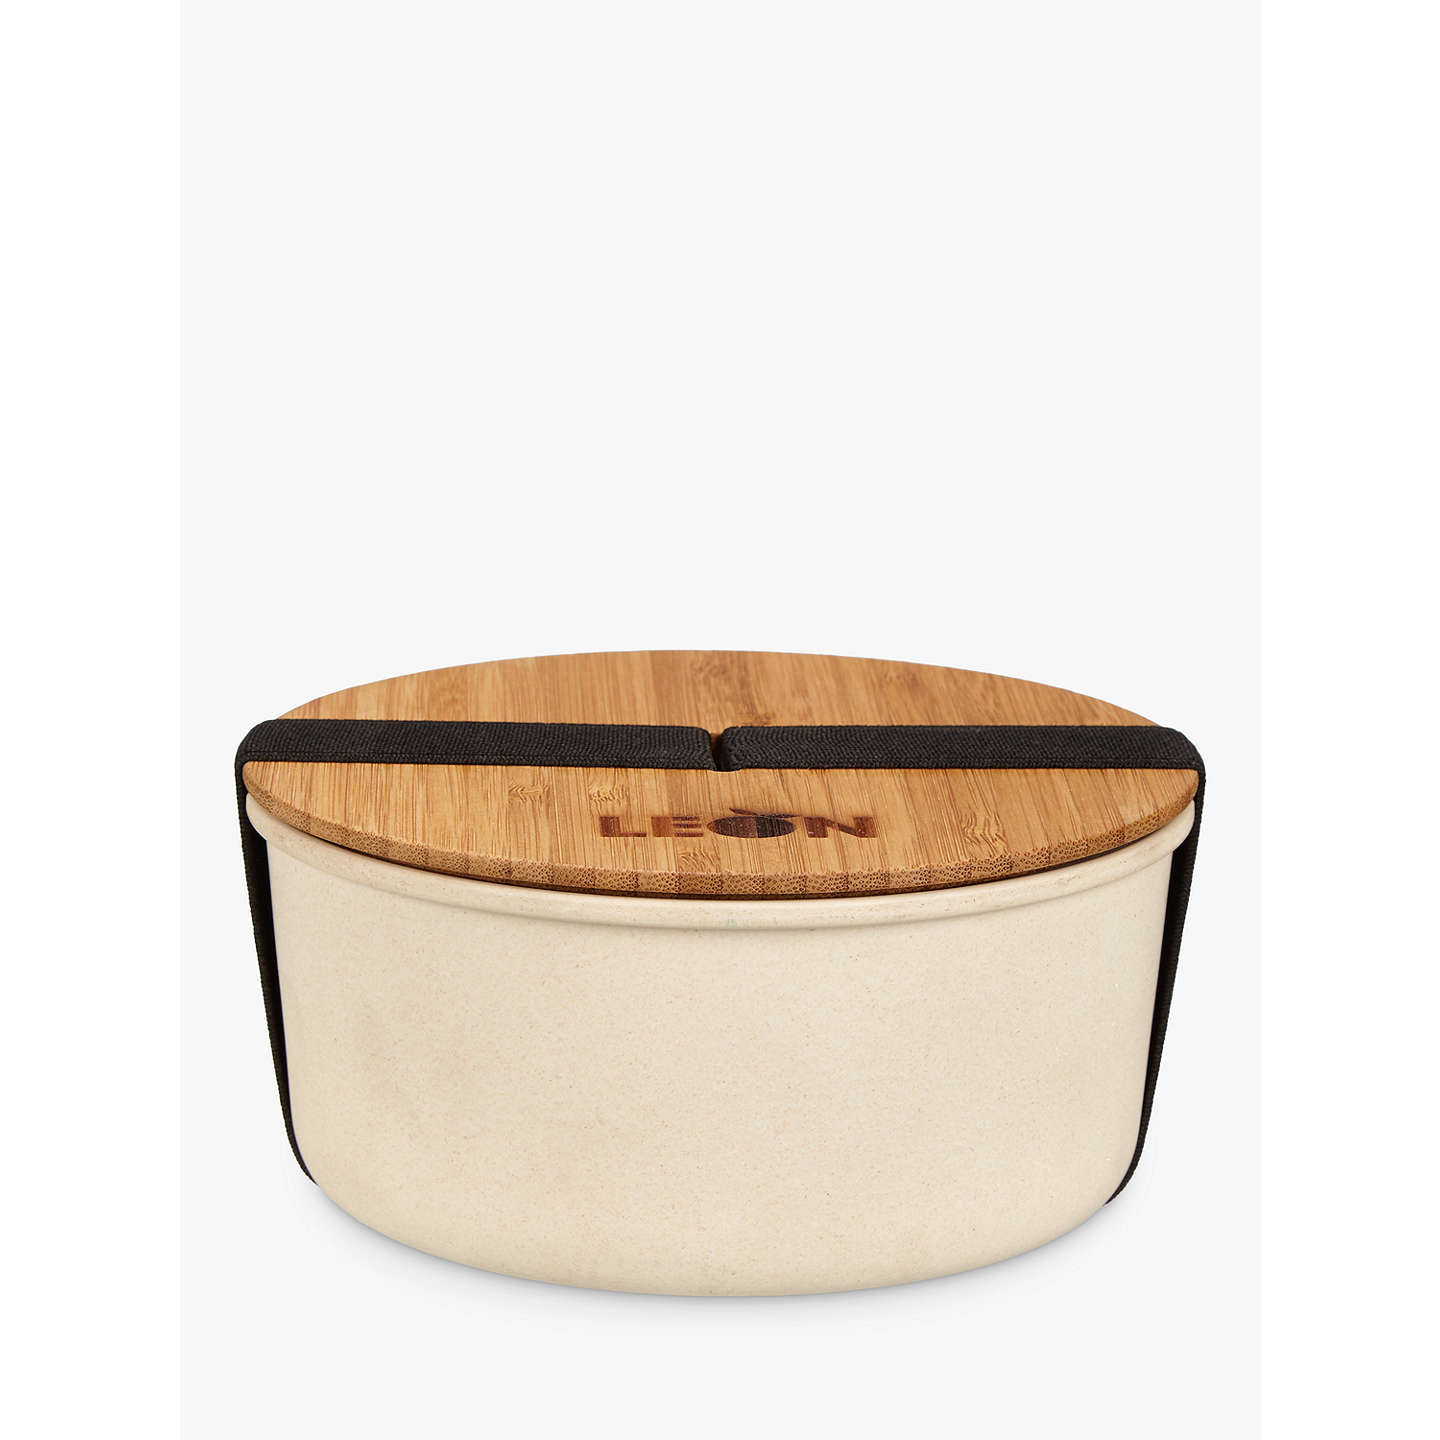 BuyLEON Round Bamboo Lunch Pot Online at johnlewis.com